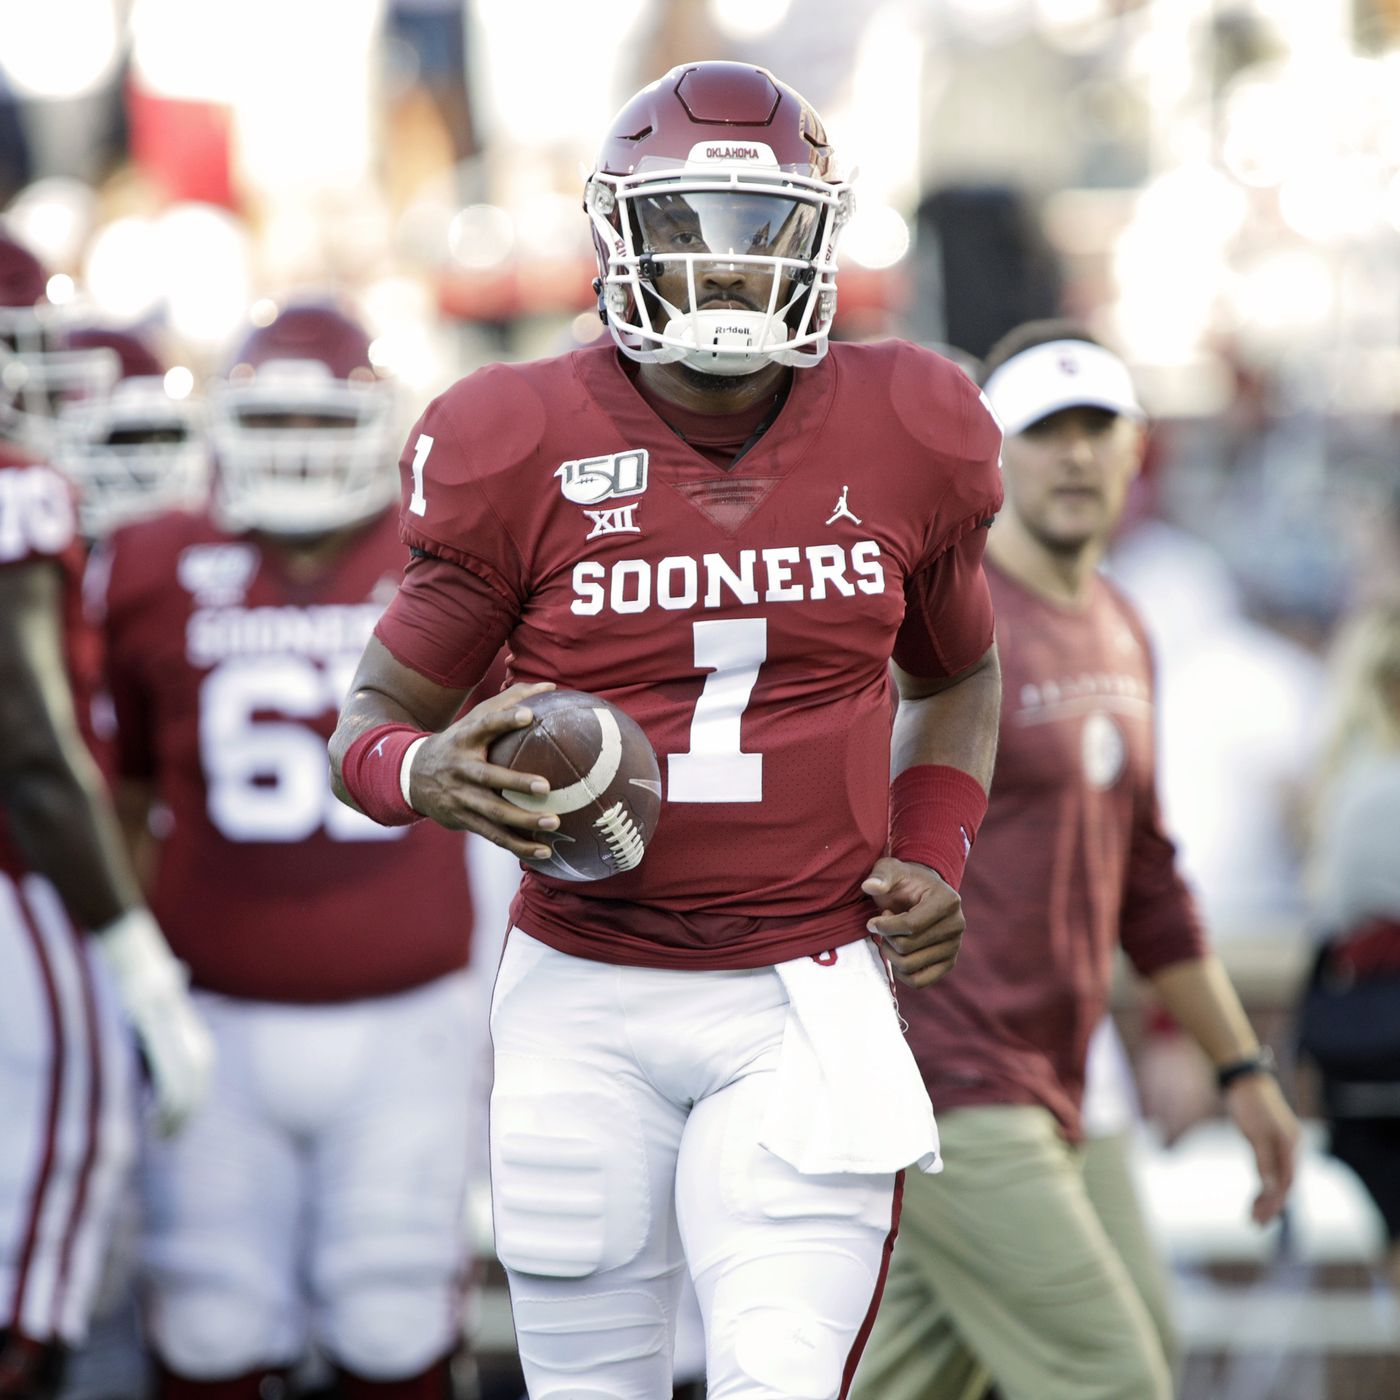 timeless design bc779 1b0a9 Oklahoma Football: PPV details released, Buddy Hield is ...